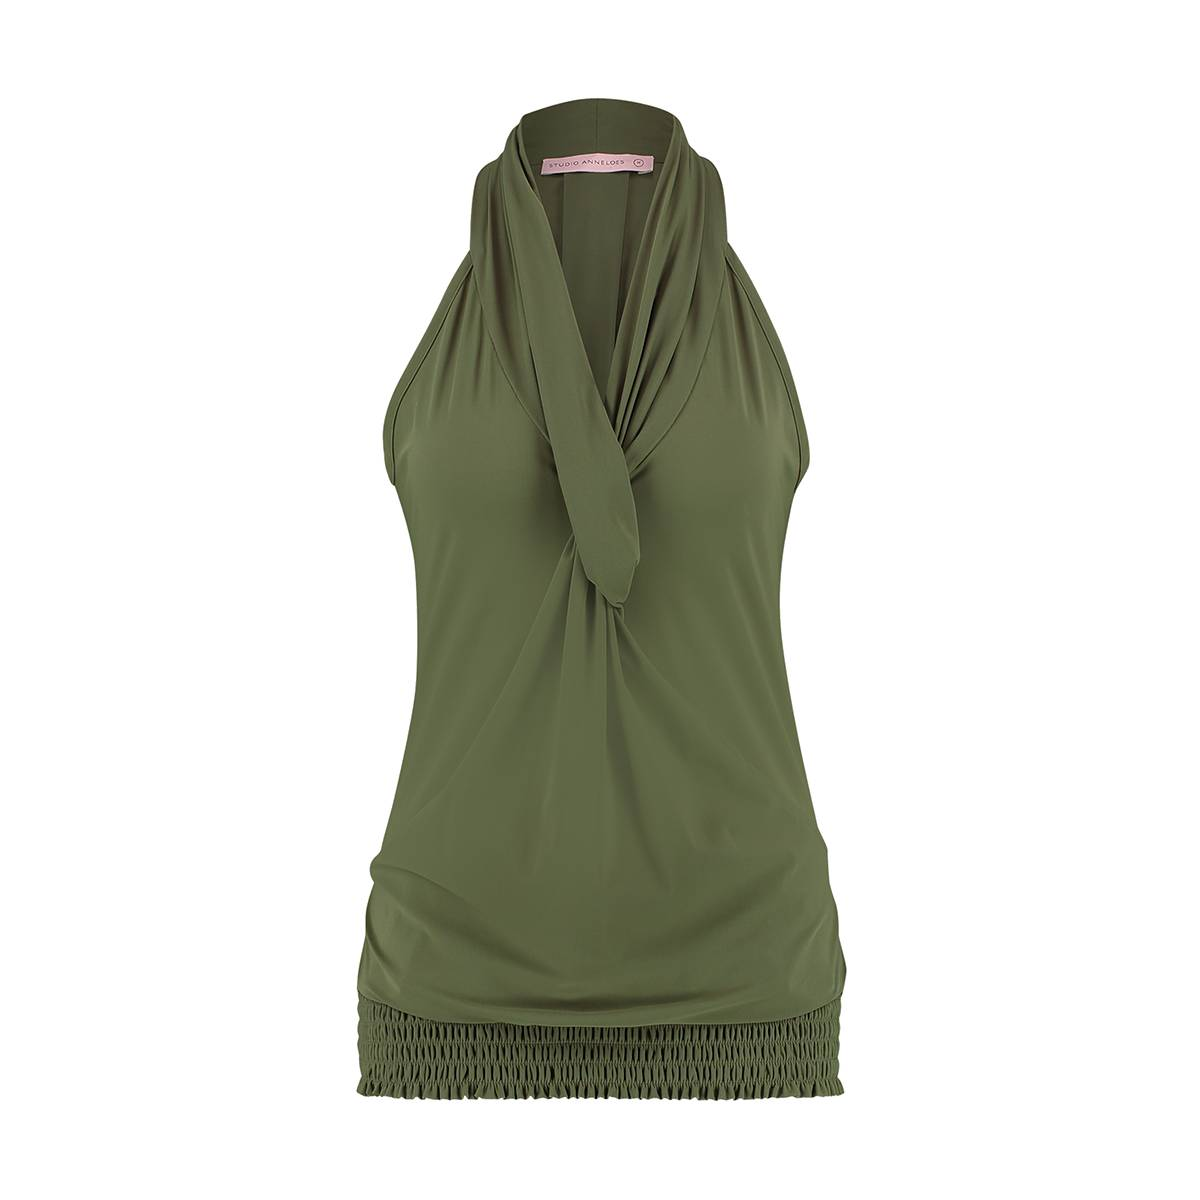 Studio Anneloes Twister smoq top 04744 Groen